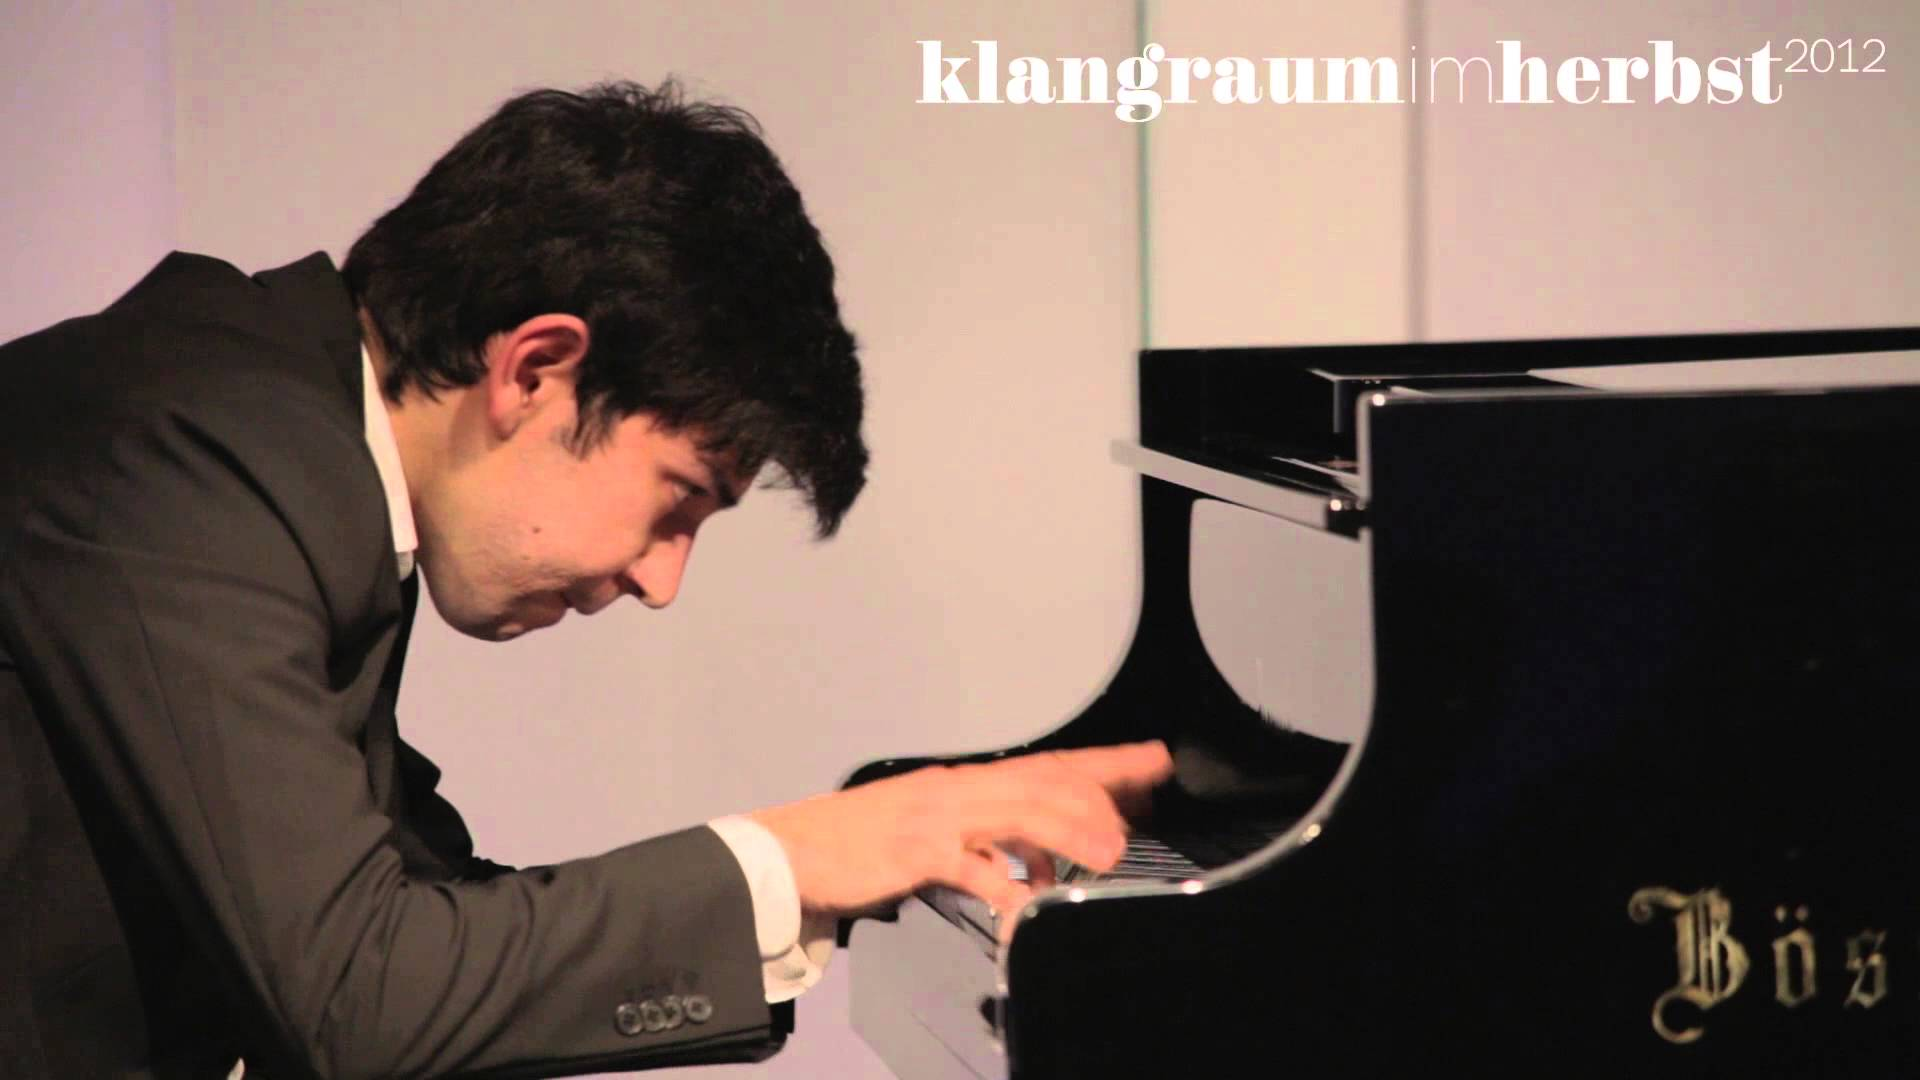 The soloist who played the wrong piano